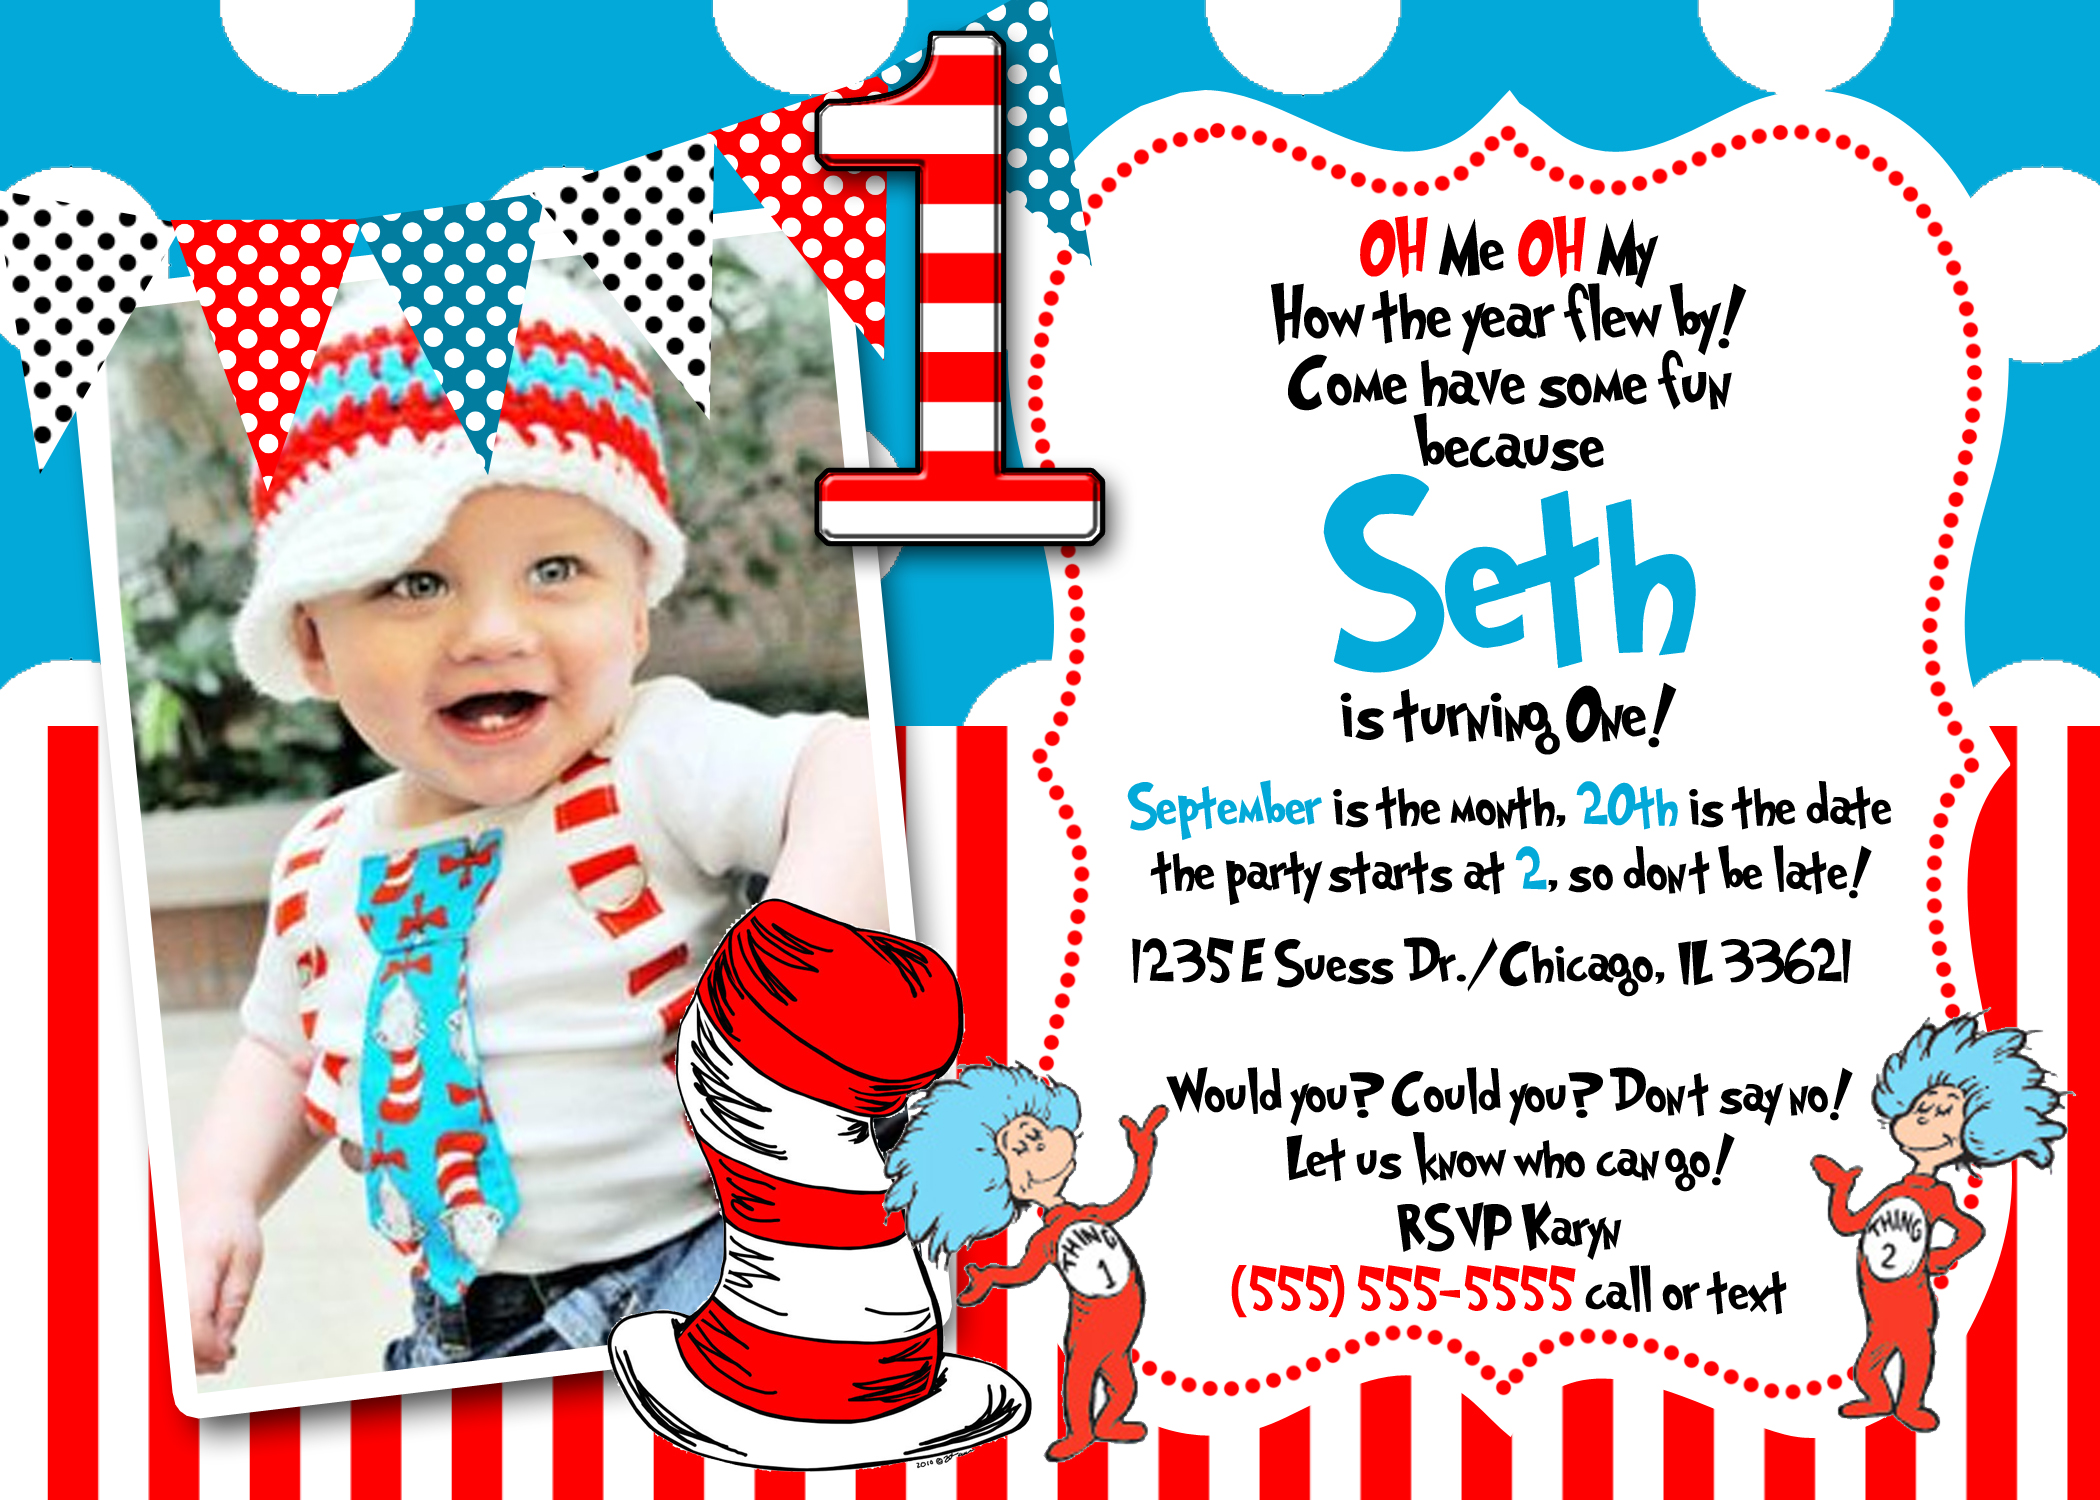 dr seuss first birthday poem ; Dr-seuss-1st-birthday-invitations-to-get-ideas-how-to-make-your-own-birthday-invitation-design-1